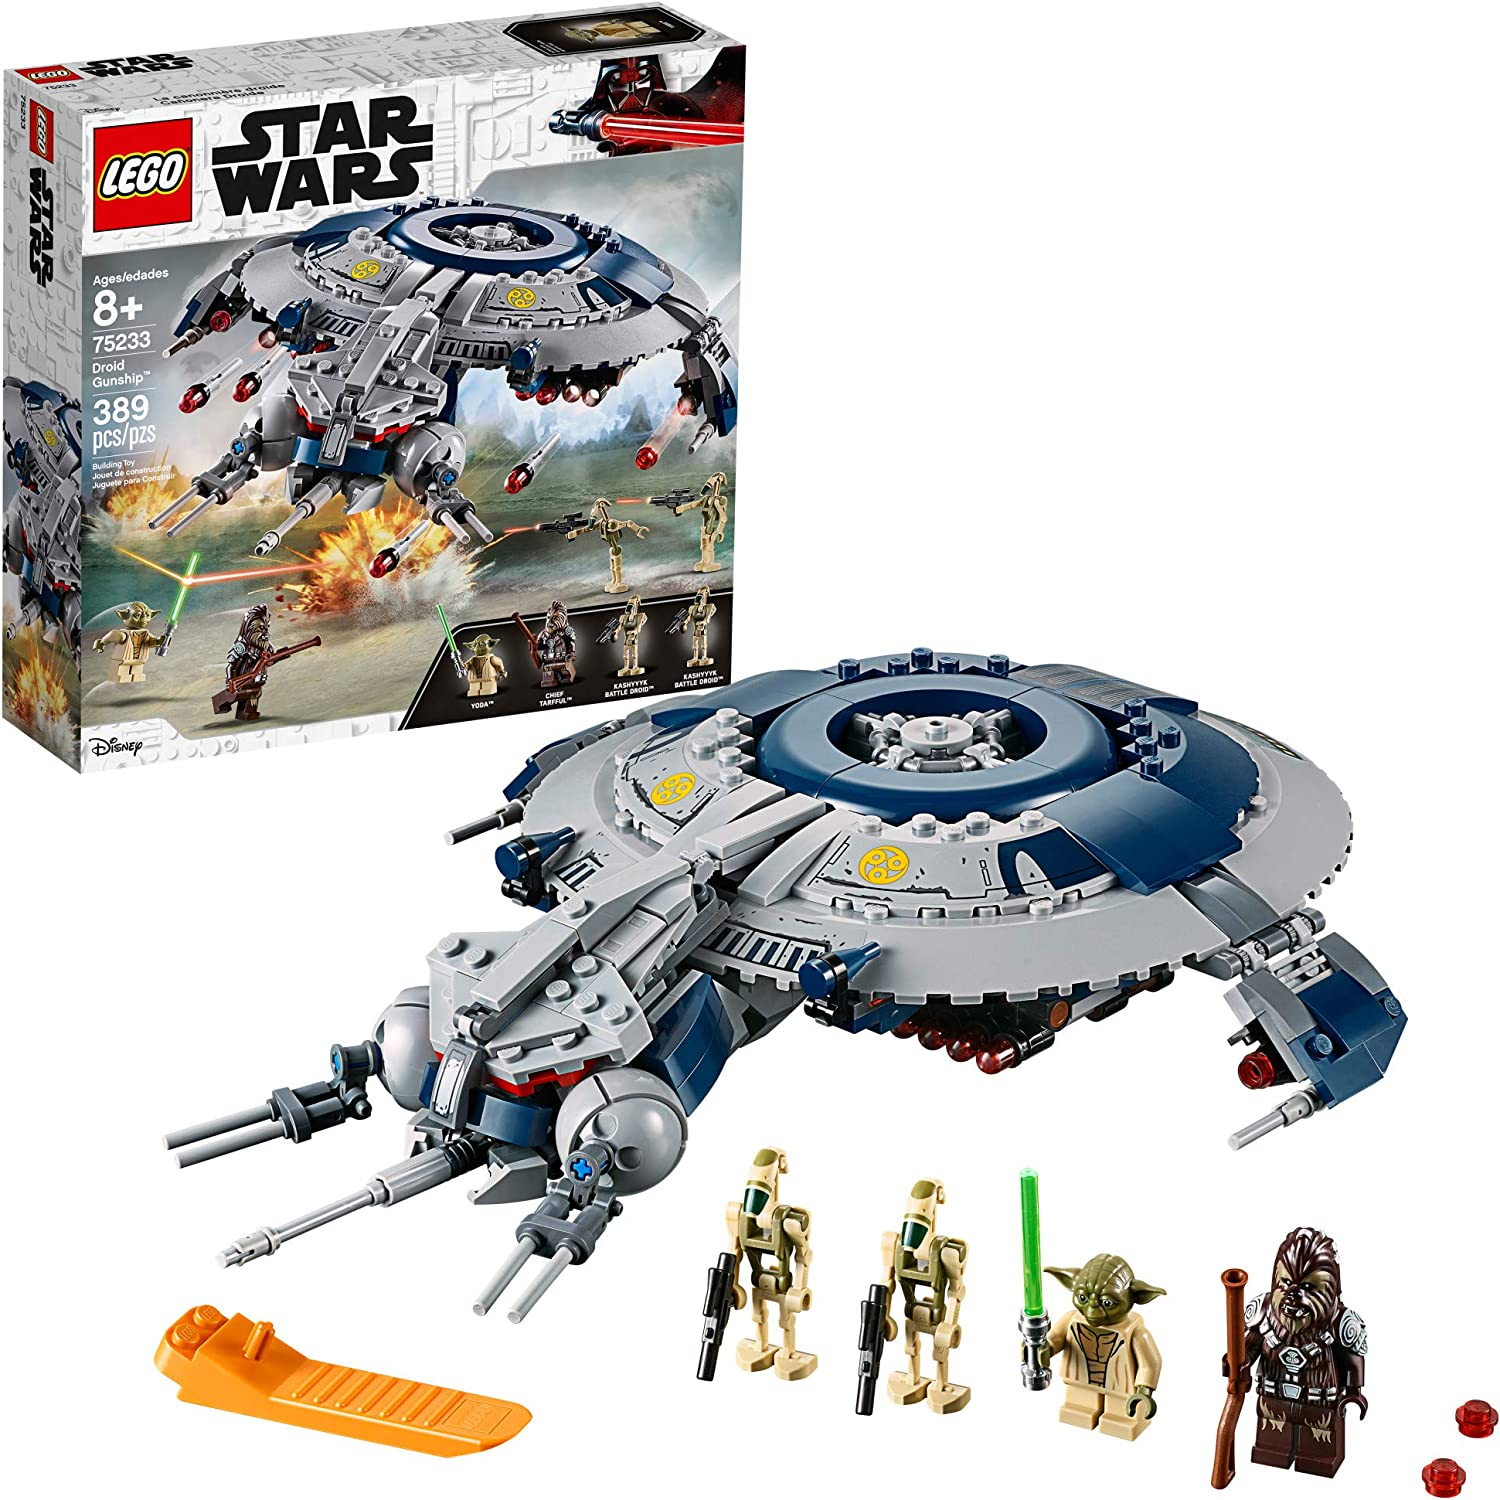 Amazon Com Lego Star Wars The Revenge Of The Sith Droid Gunship 75233 Building Kit 329 Pieces Toys Games